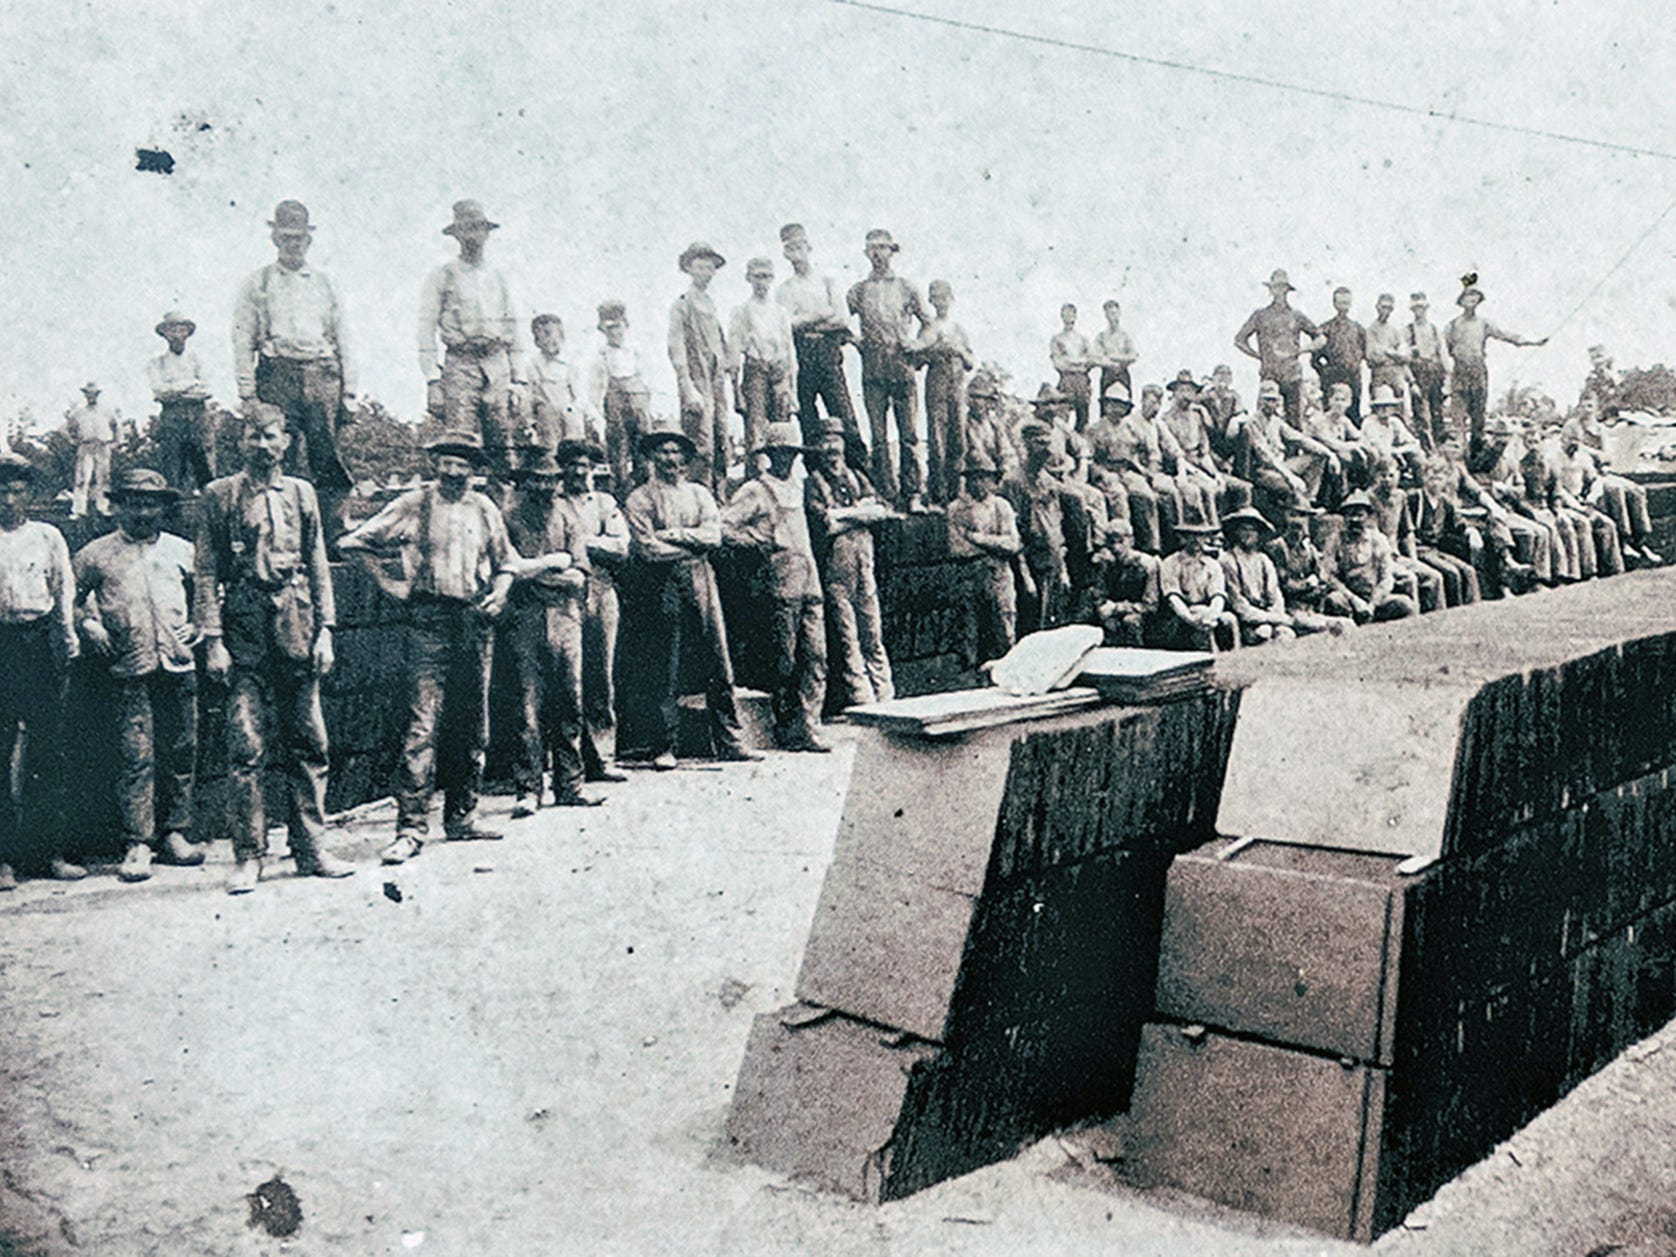 These are splitters, dressers, and quarryman at Proctor's Quarry around 1895. Note the stacked slates. This is known as a slate bank. The picture is mounted on an interpretive board in Coulsontown in front of the Welsh quarrymen's cottages.